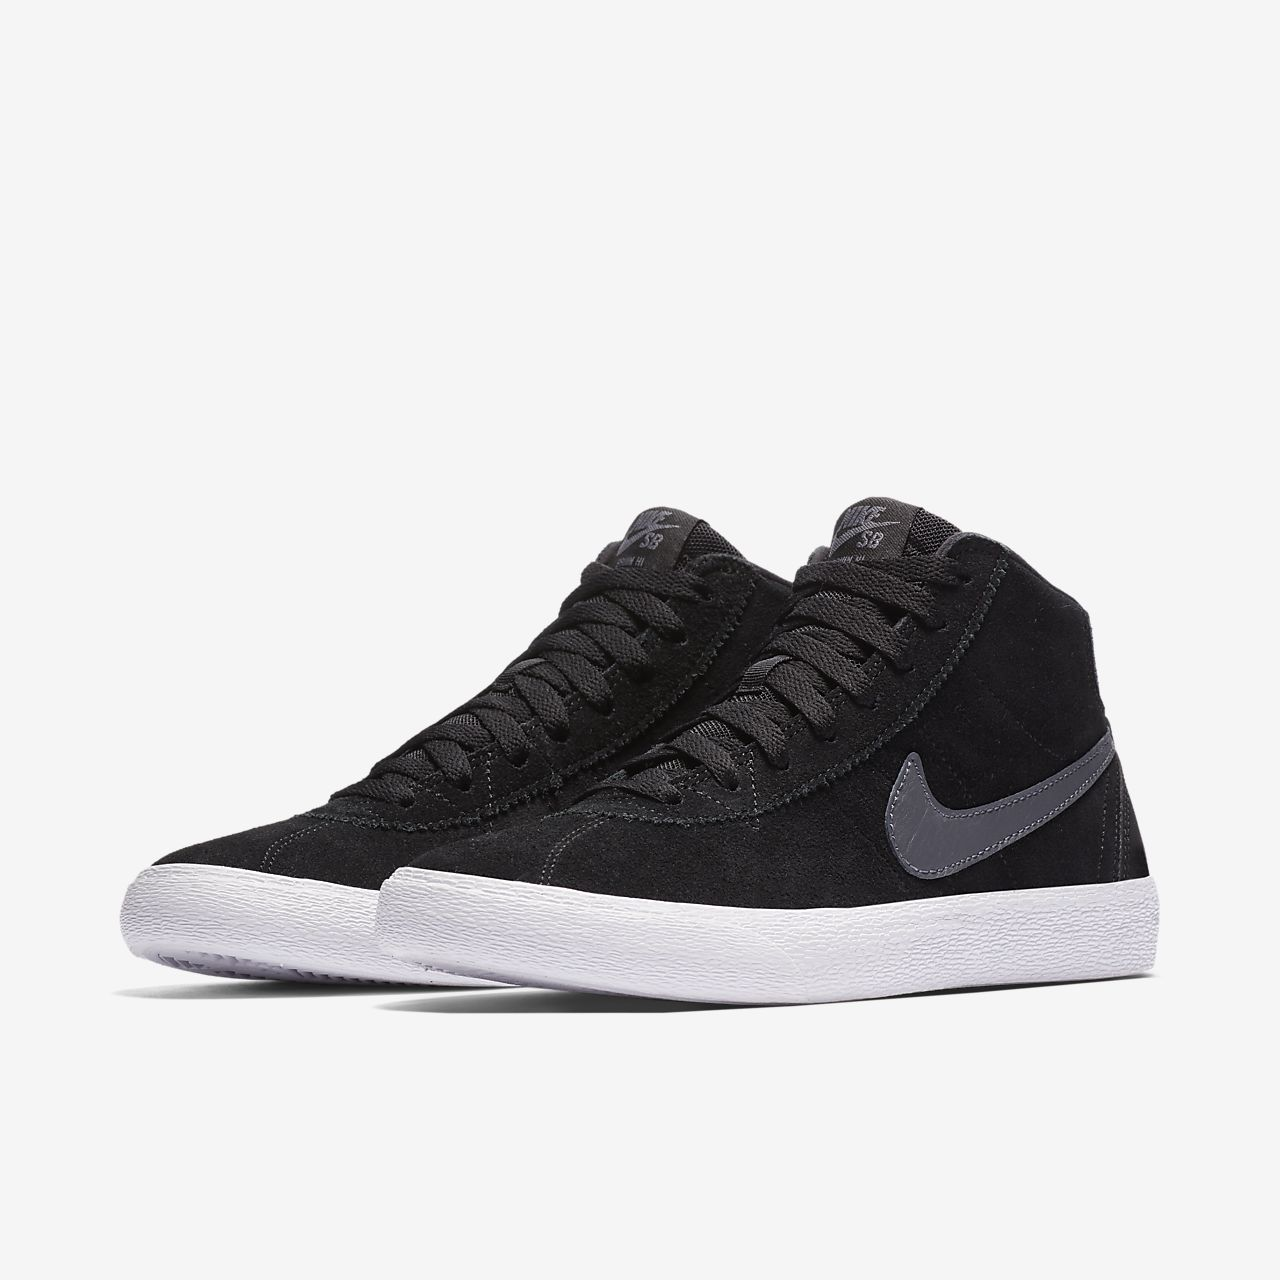 1cd2b6be4016 Nike SB Bruin High Women s Skateboarding Shoe. Nike.com